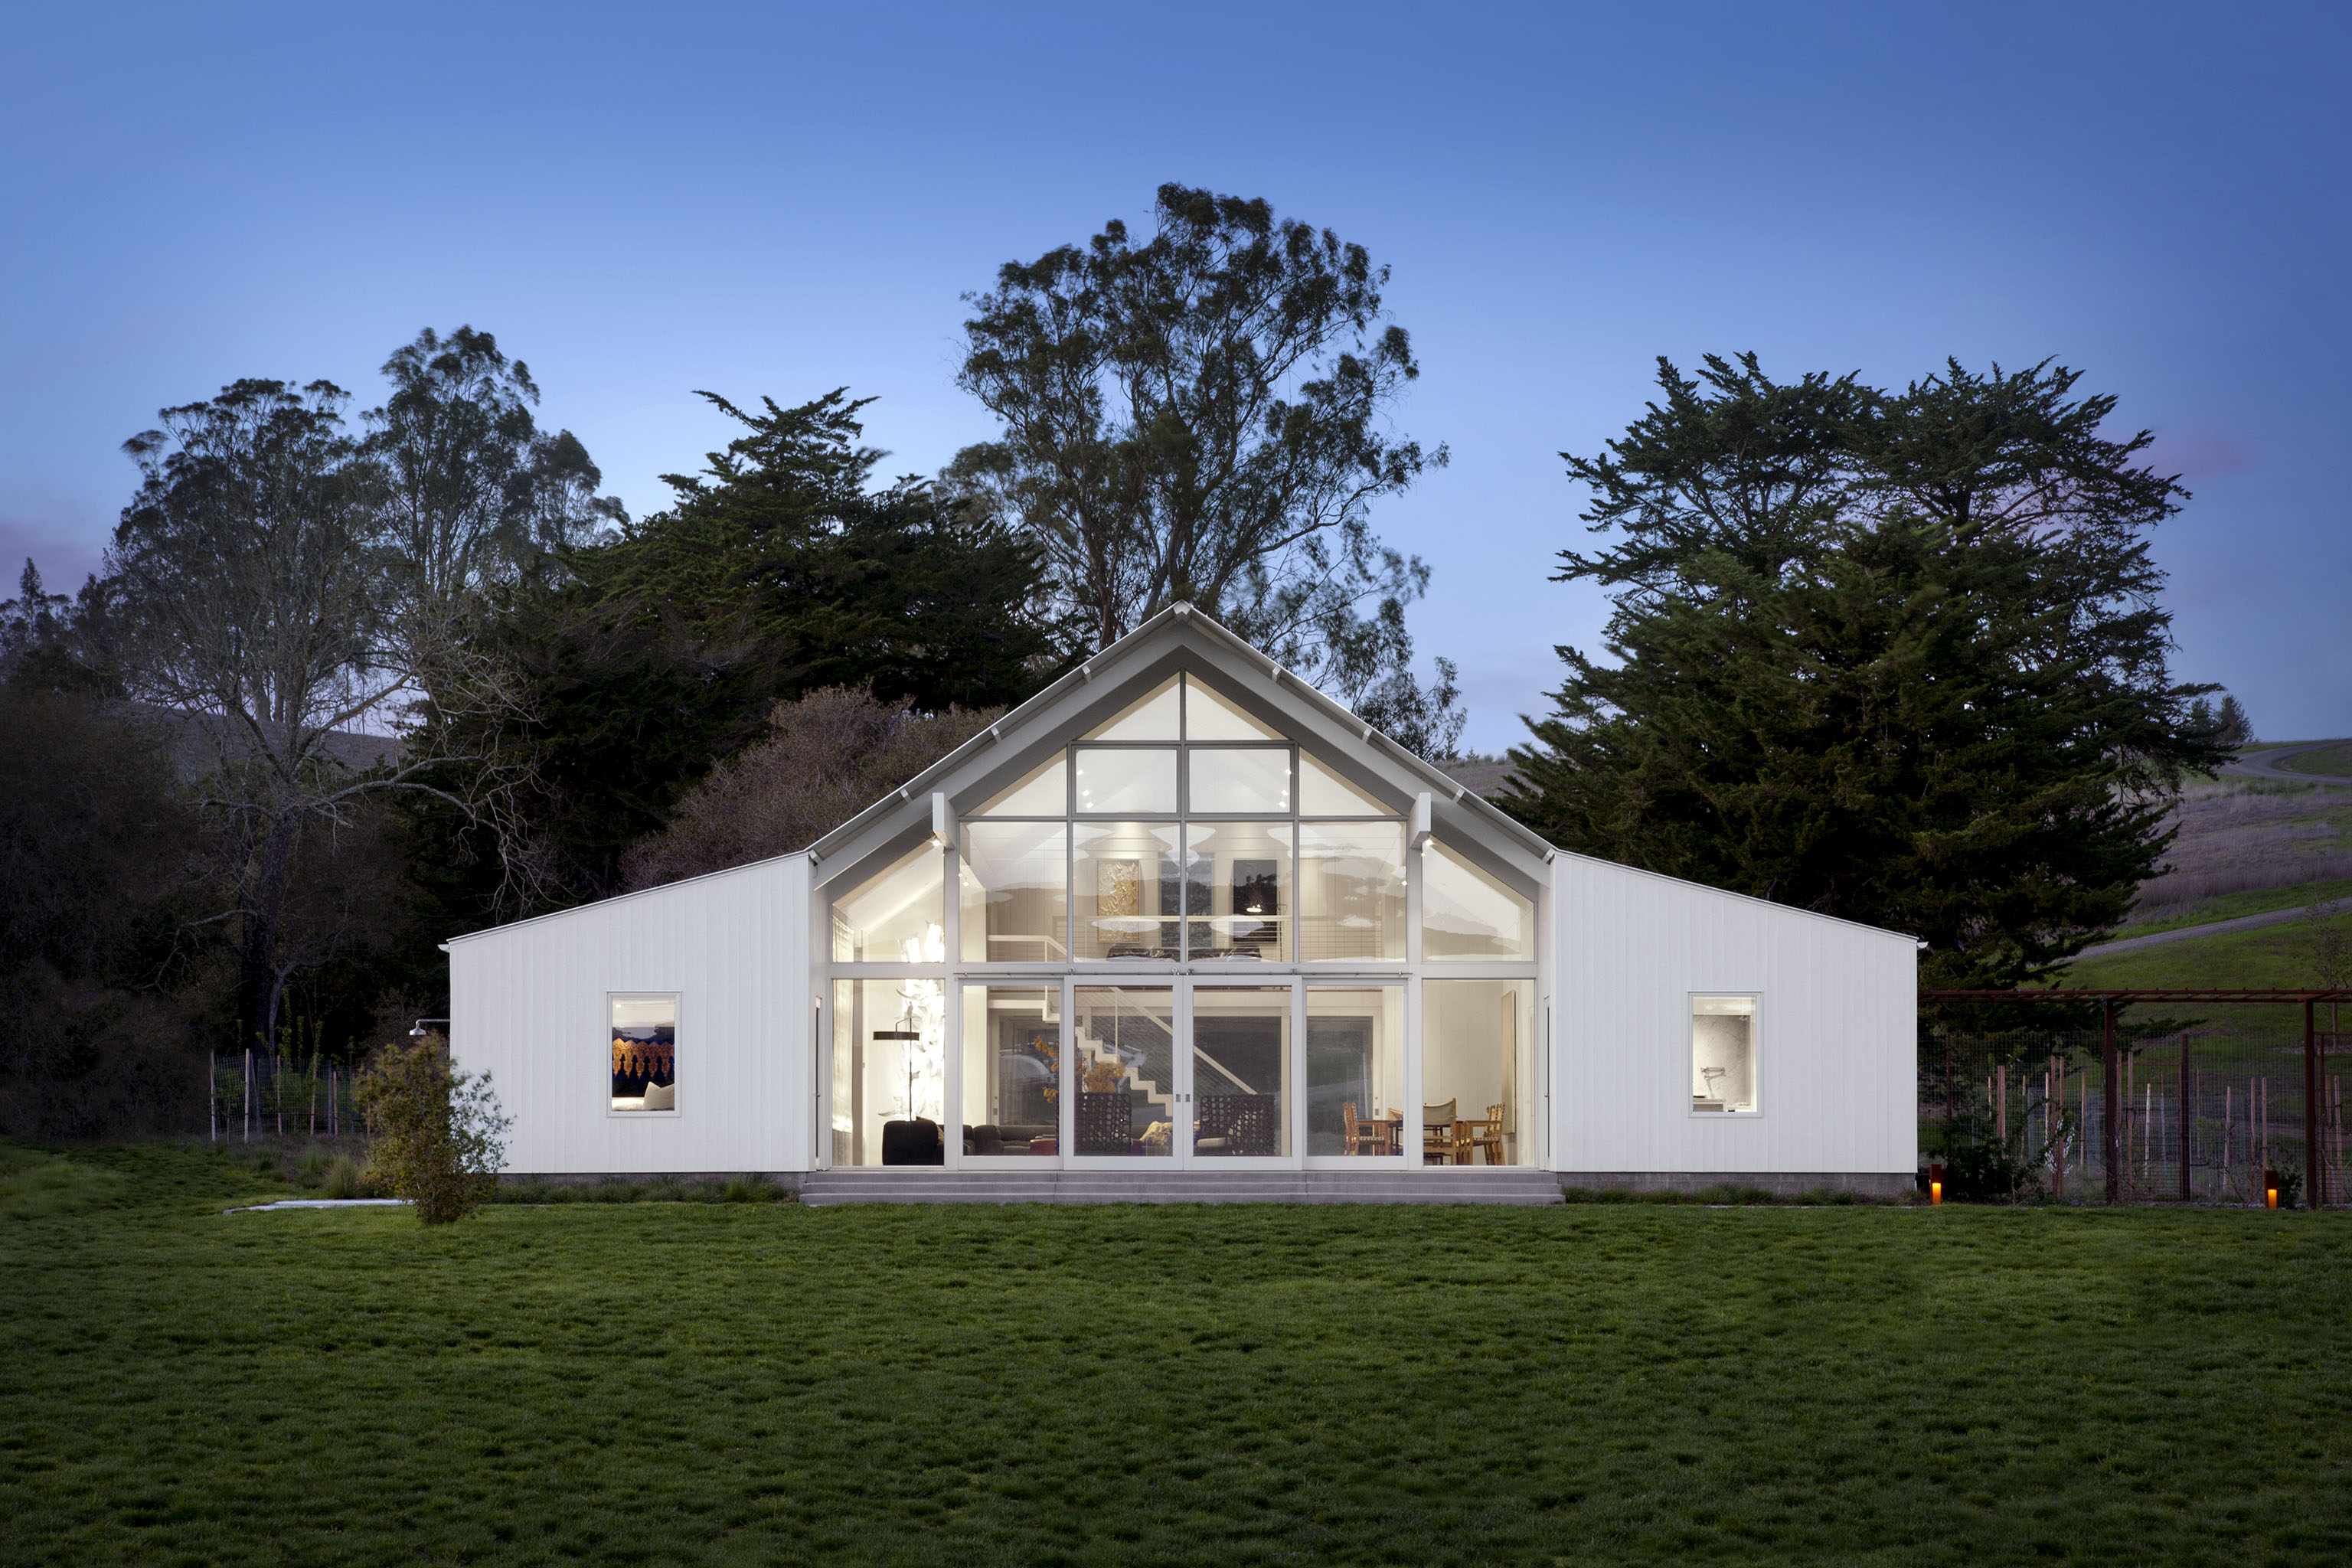 Contemporary Hupomone Ranch Design Project By Turnbull, Griffin, Haesloop Architects